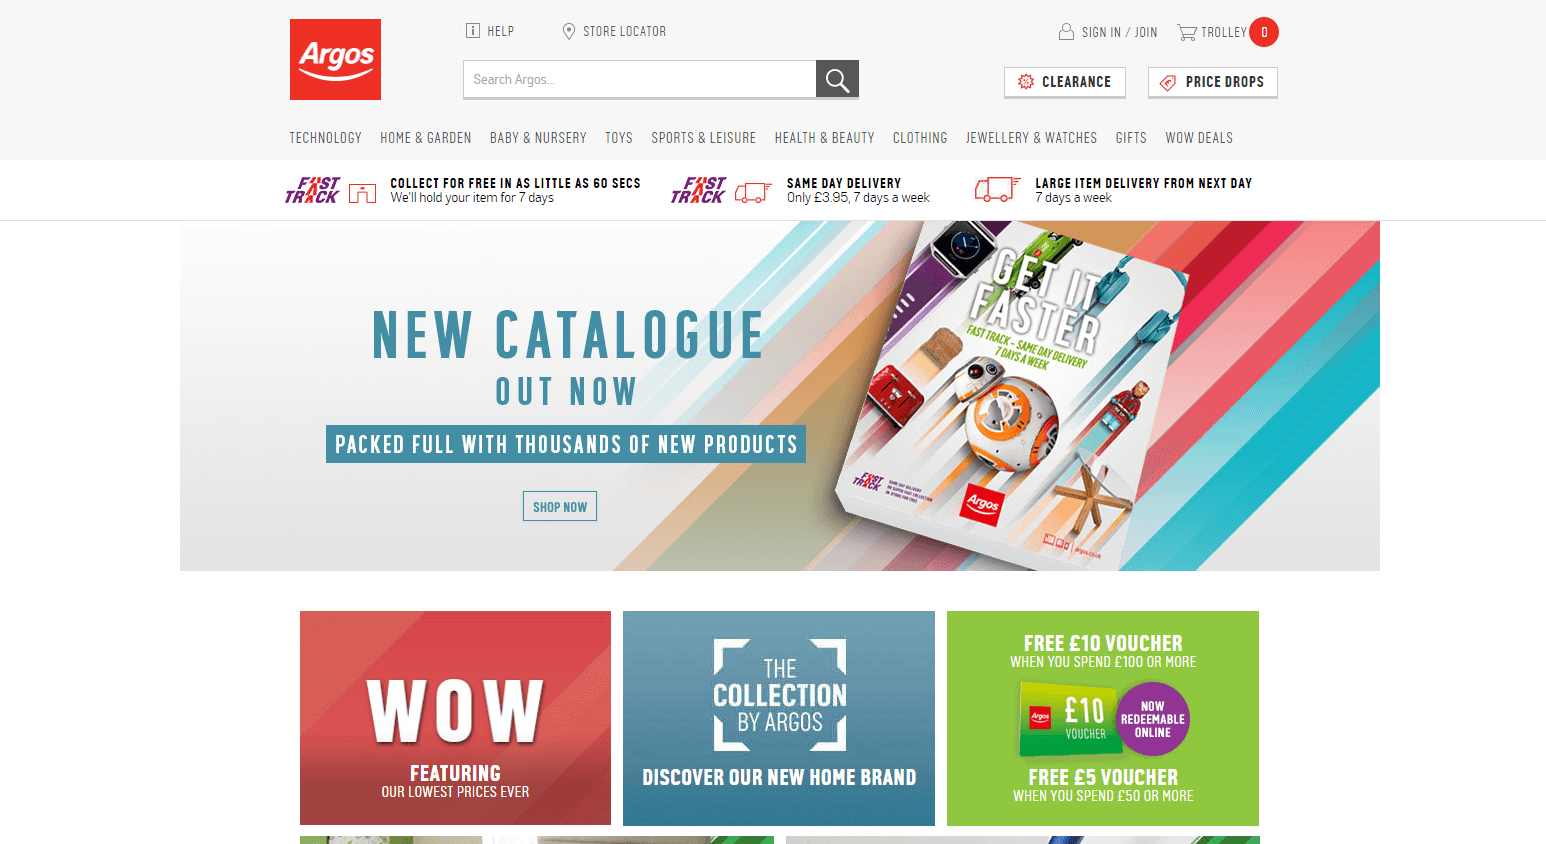 Receive the latest Argos online voucher codes to your inbox